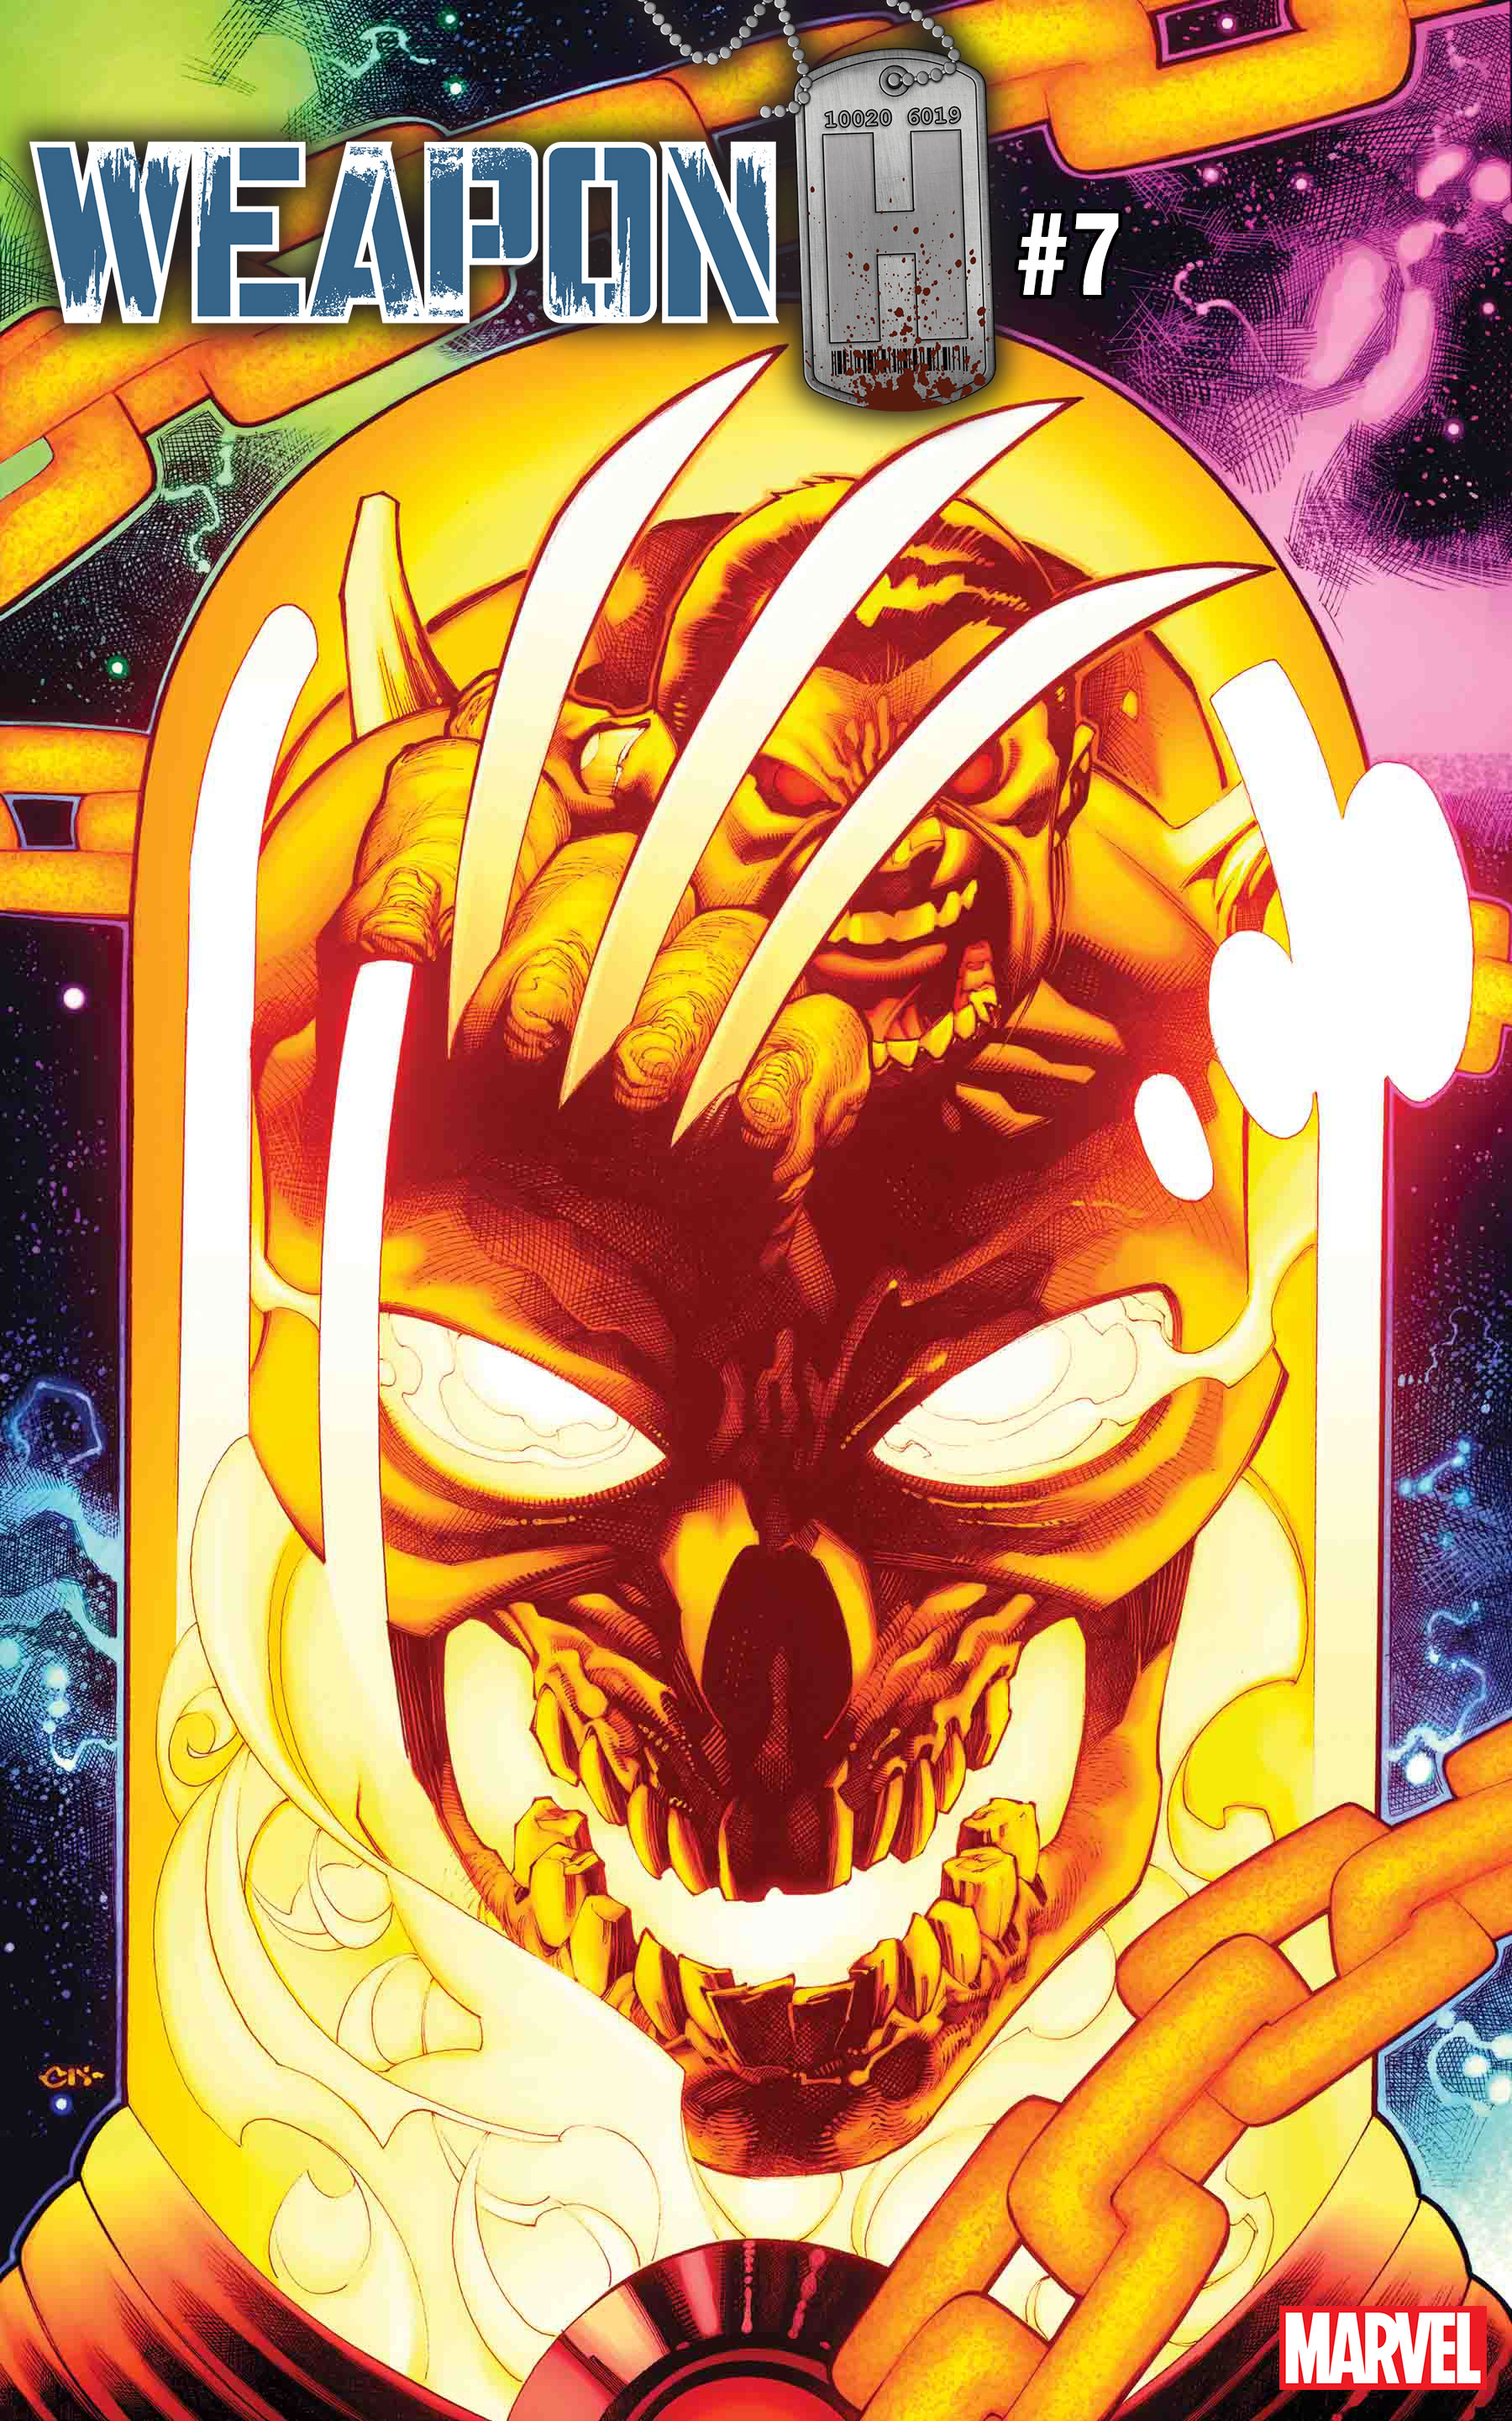 Cosmic Ghost Rider Rides Into Comic Shops With New Variant